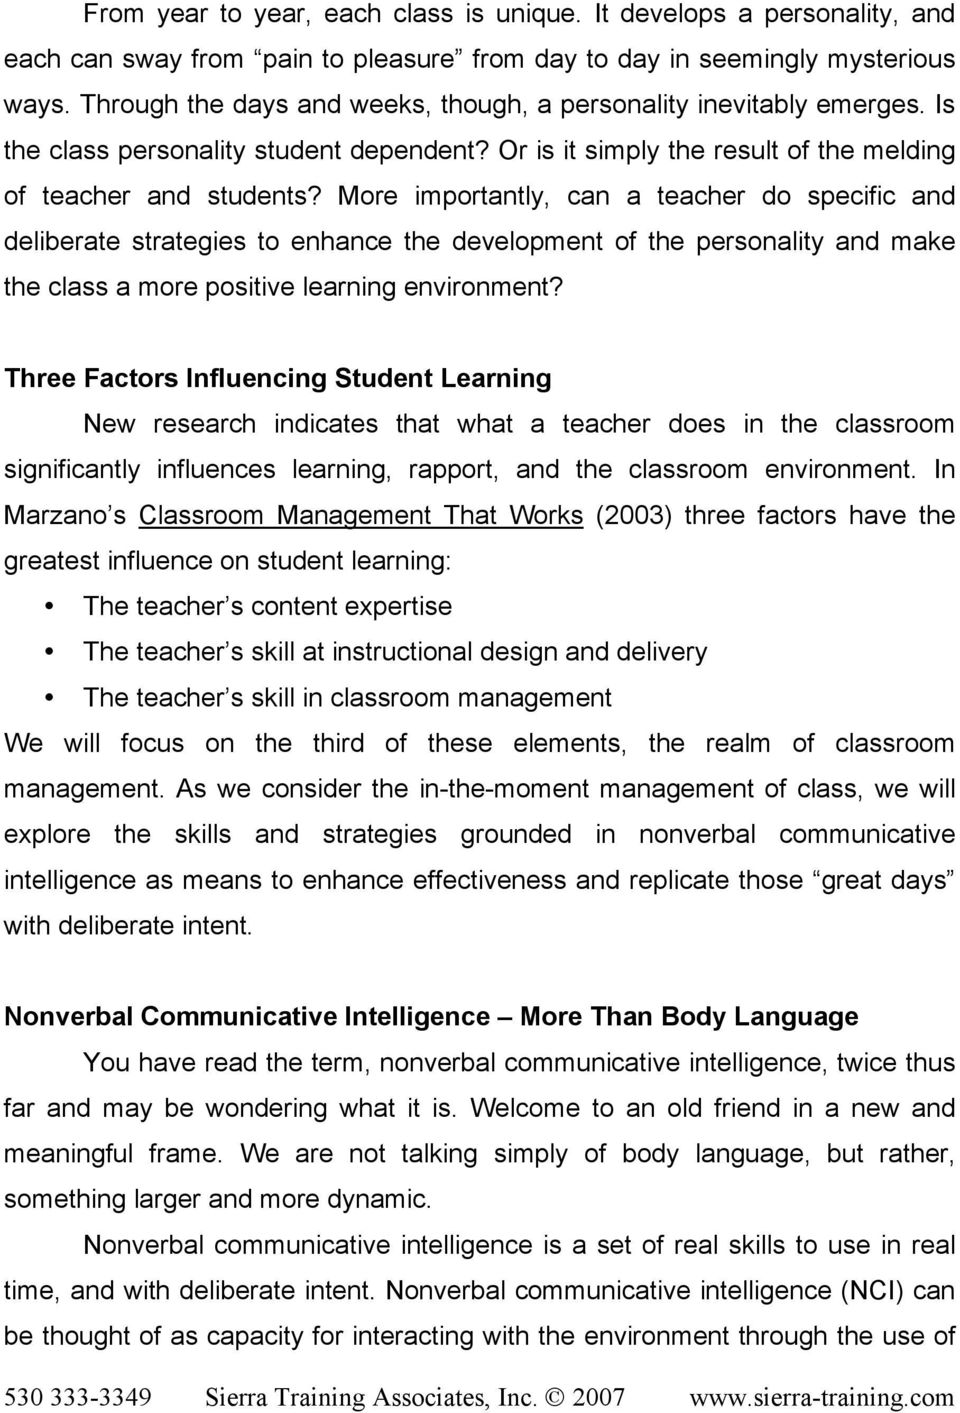 More importantly, can a teacher do specific and deliberate strategies to enhance the development of the personality and make the class a more positive learning environment?